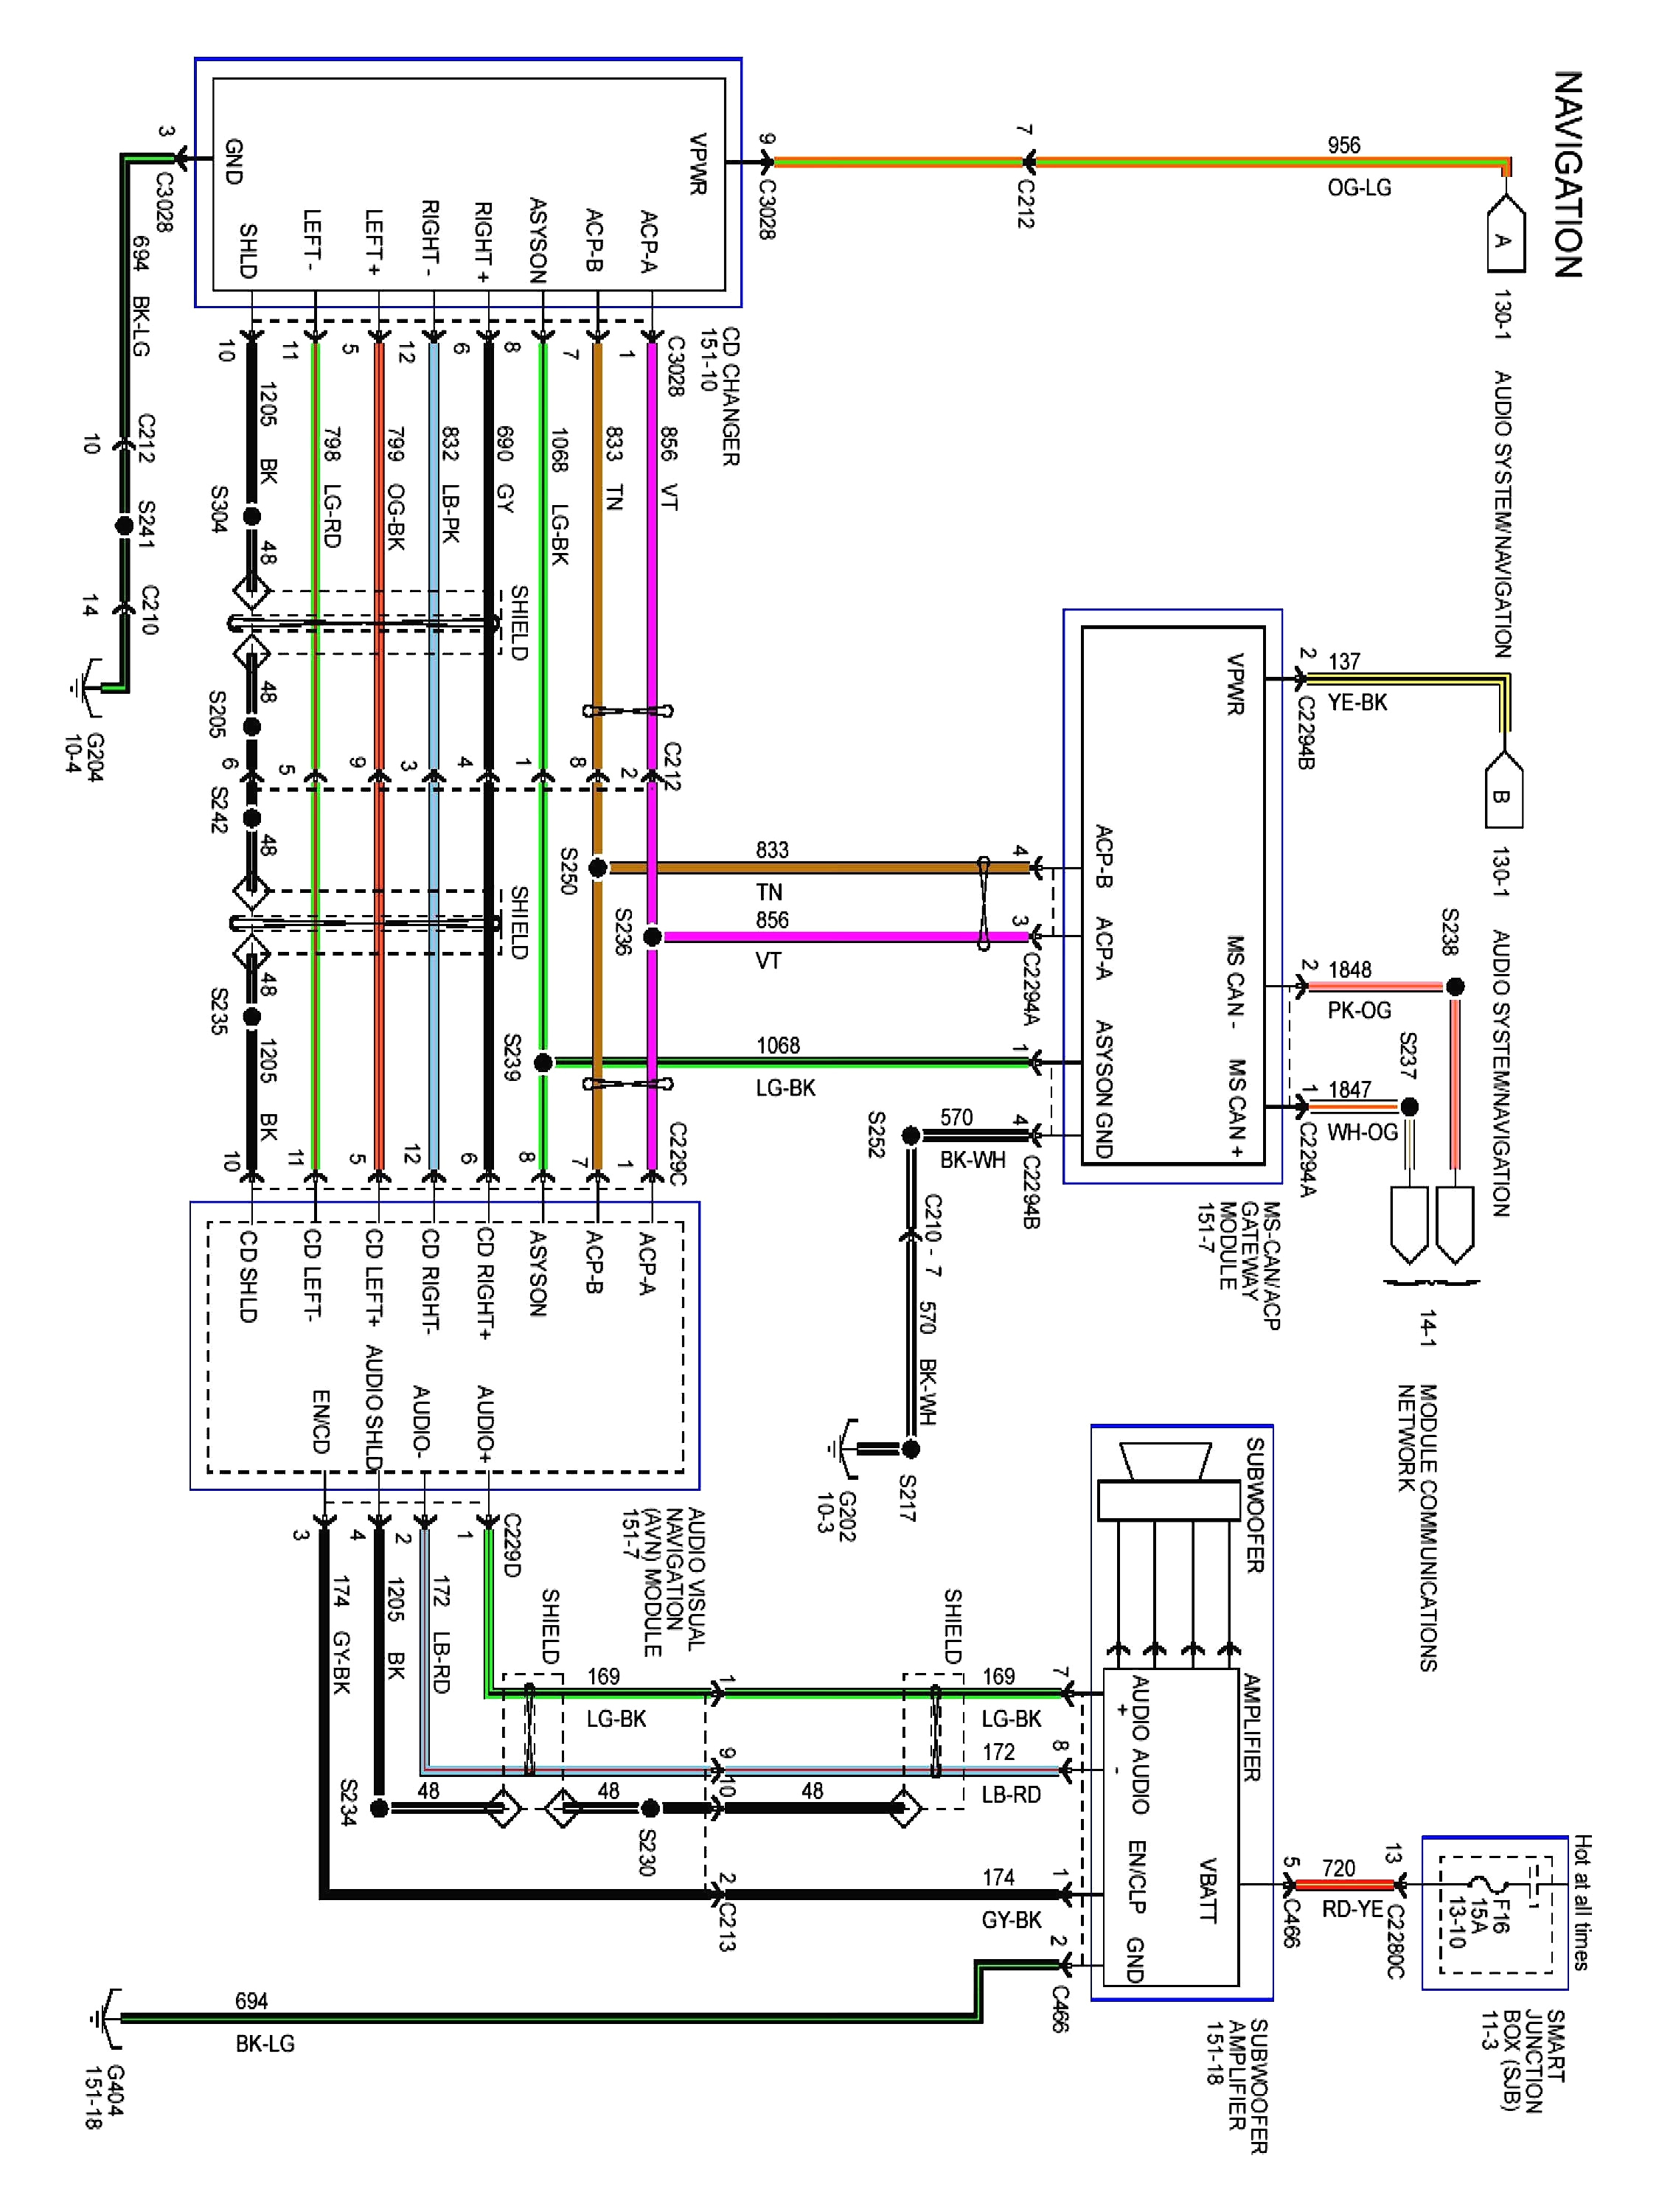 wiring diagram for 2006 ford mustang wiring diagram toolbox 2006 ford mustang wiring diagram 06 mustang wiring diagram